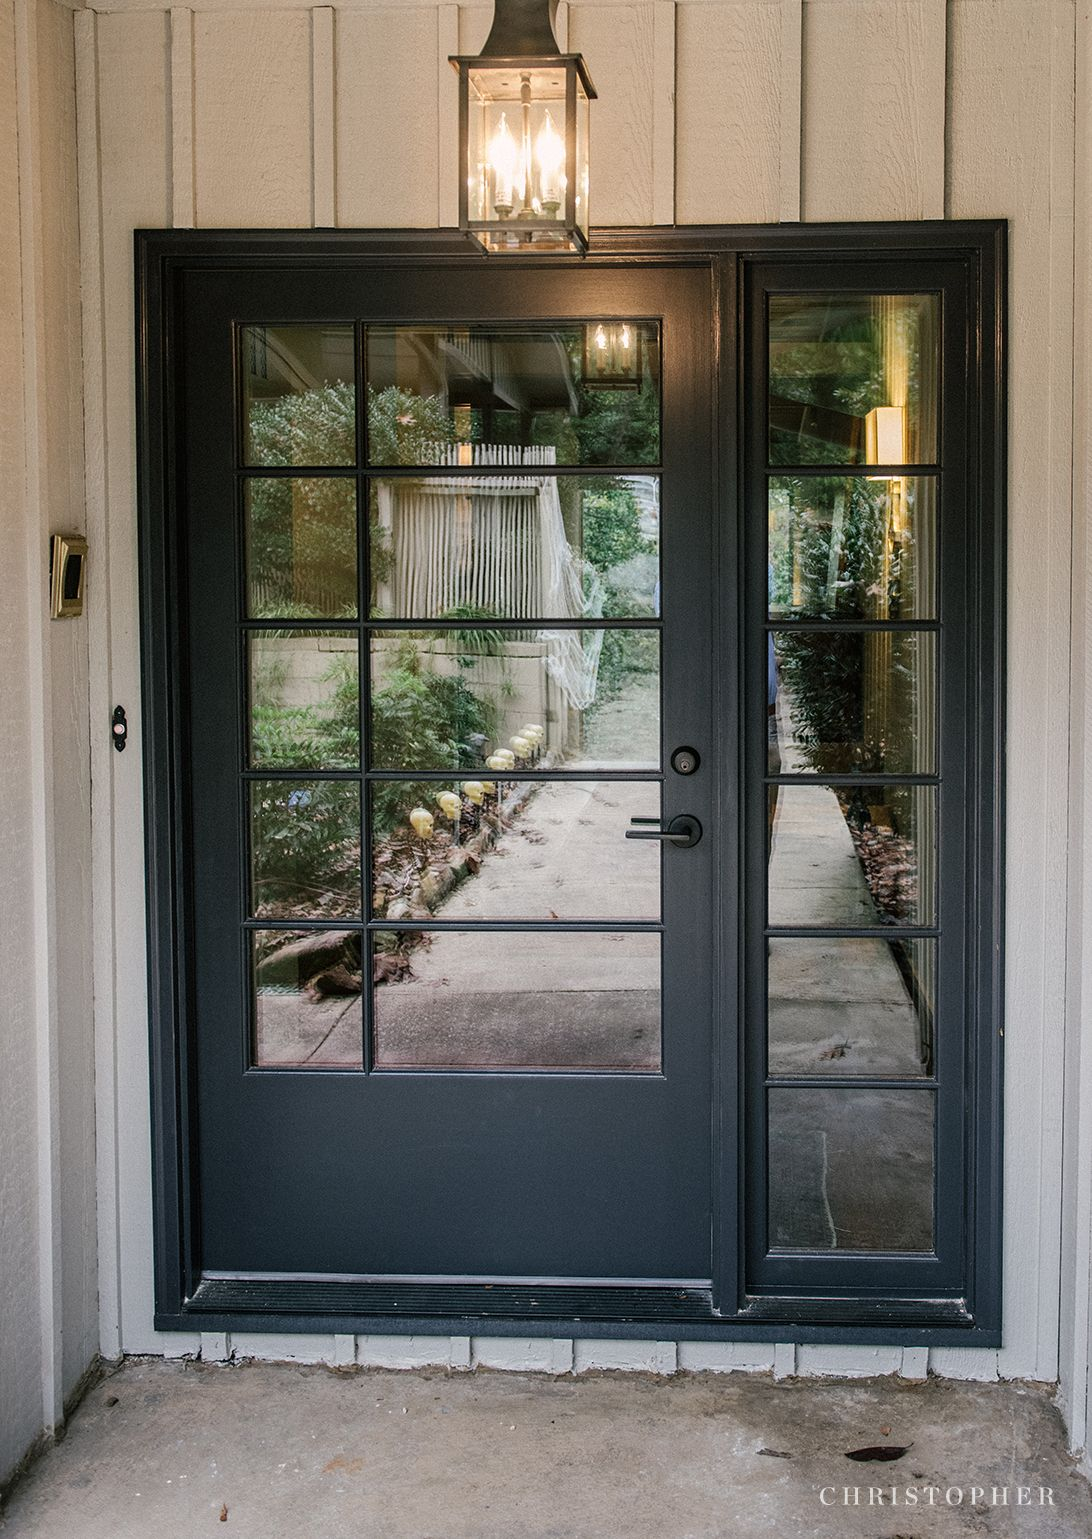 Luxury Commercial Residential Architecture Interior Design Alabama French Doors Exterior French Doors Interior Architecture Design